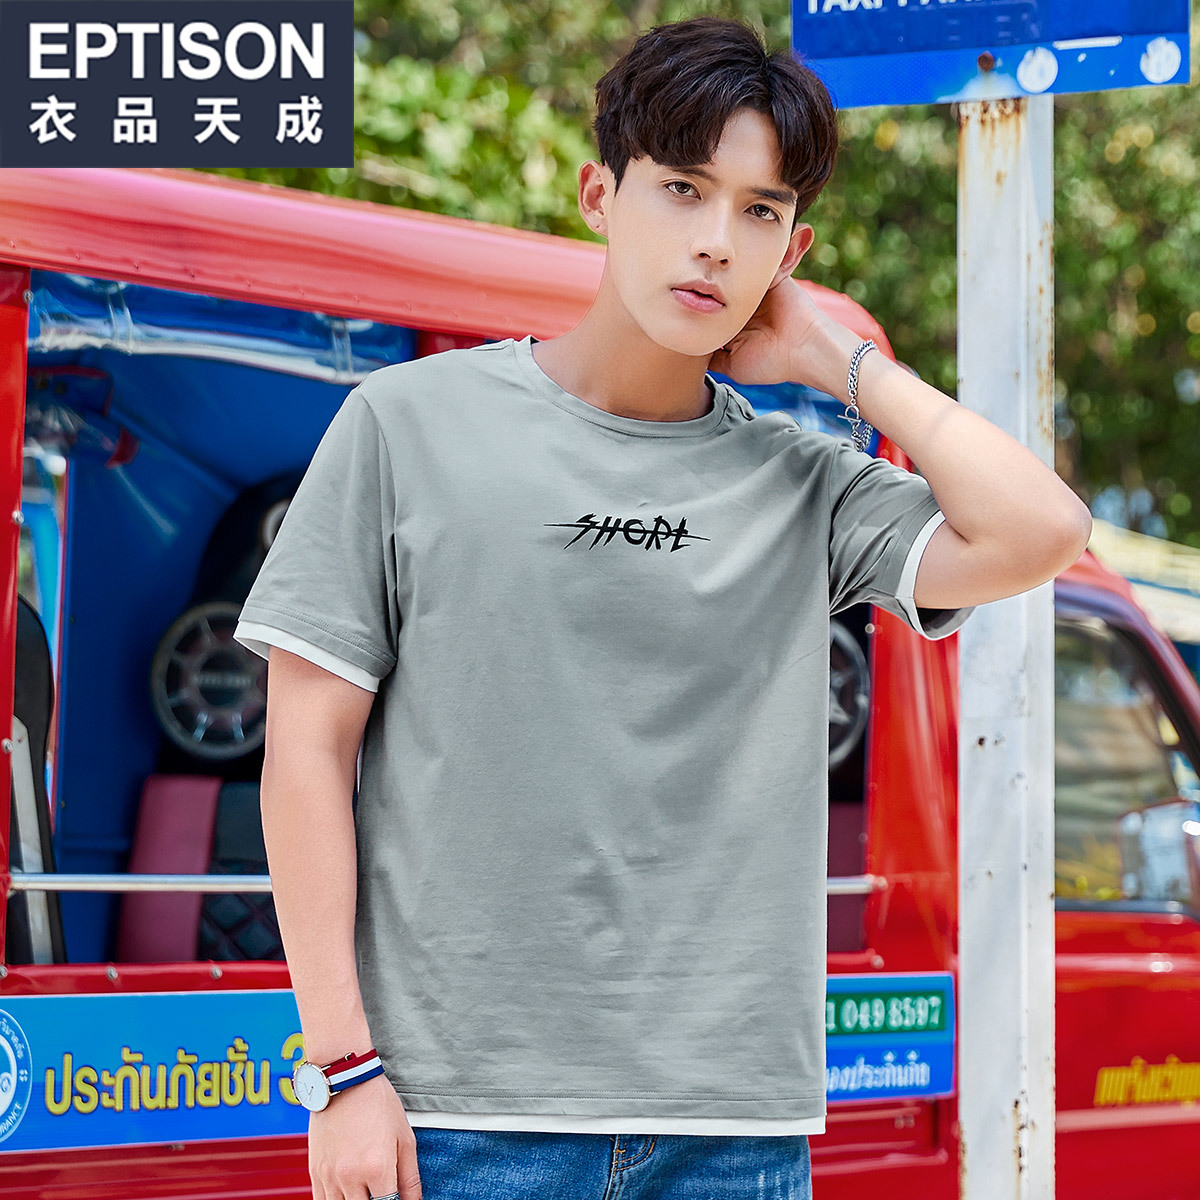 Clothing Tiancheng 2019 summer new men's short-sleeved T-shirt round neck hit color printing trend of youth half-sleeved shirt